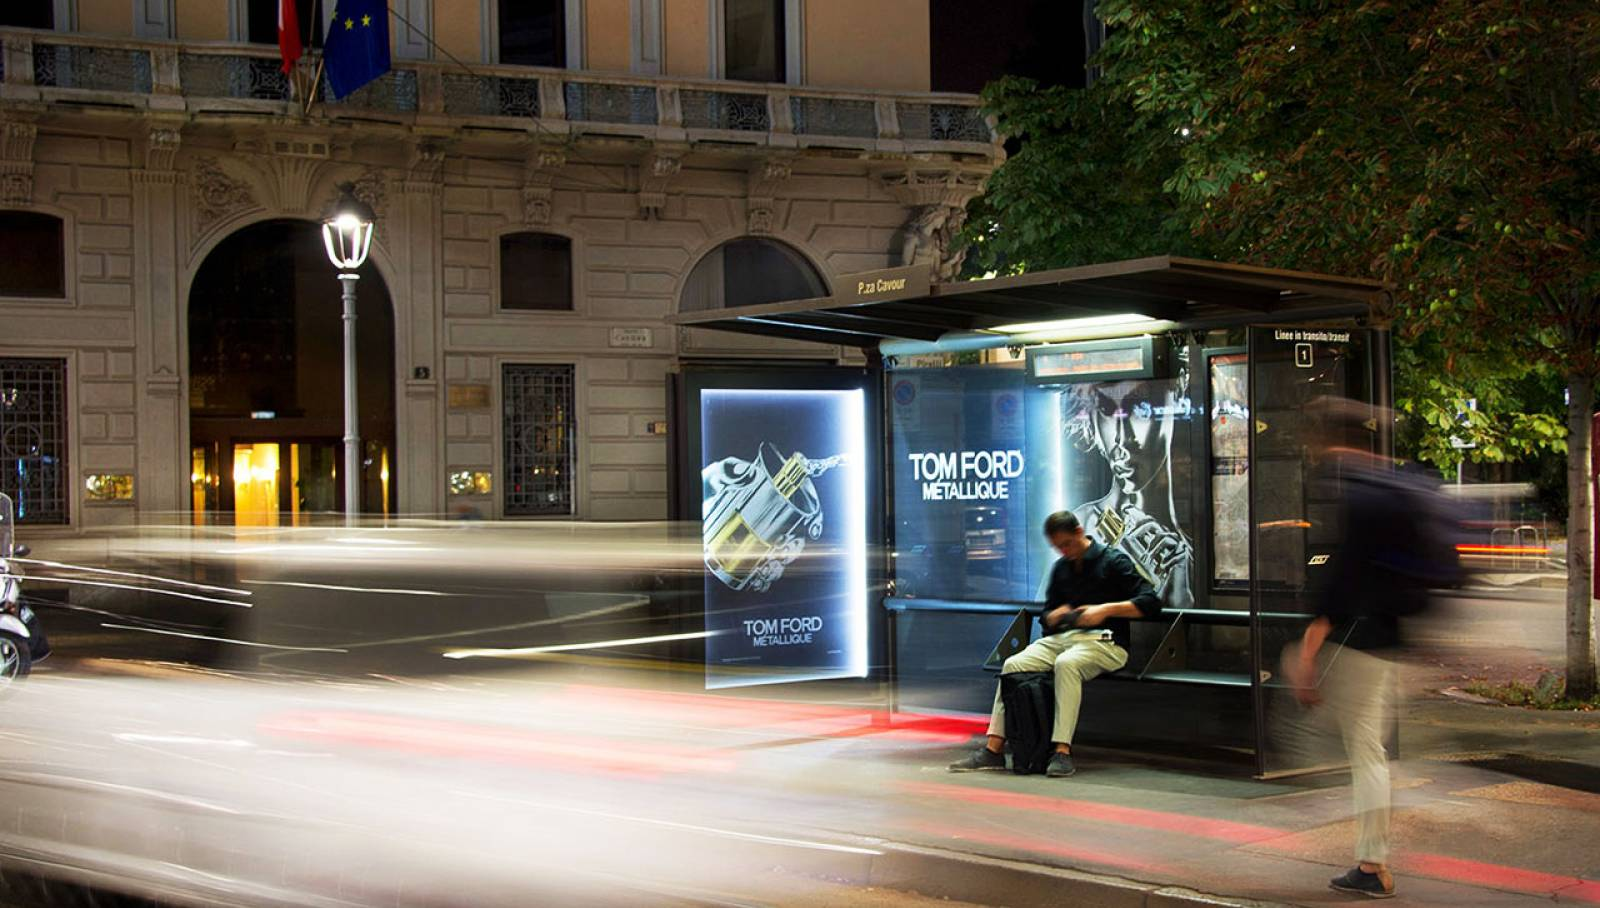 OOH advertising IGPDecaux Milano brand pensiline per Tom Ford